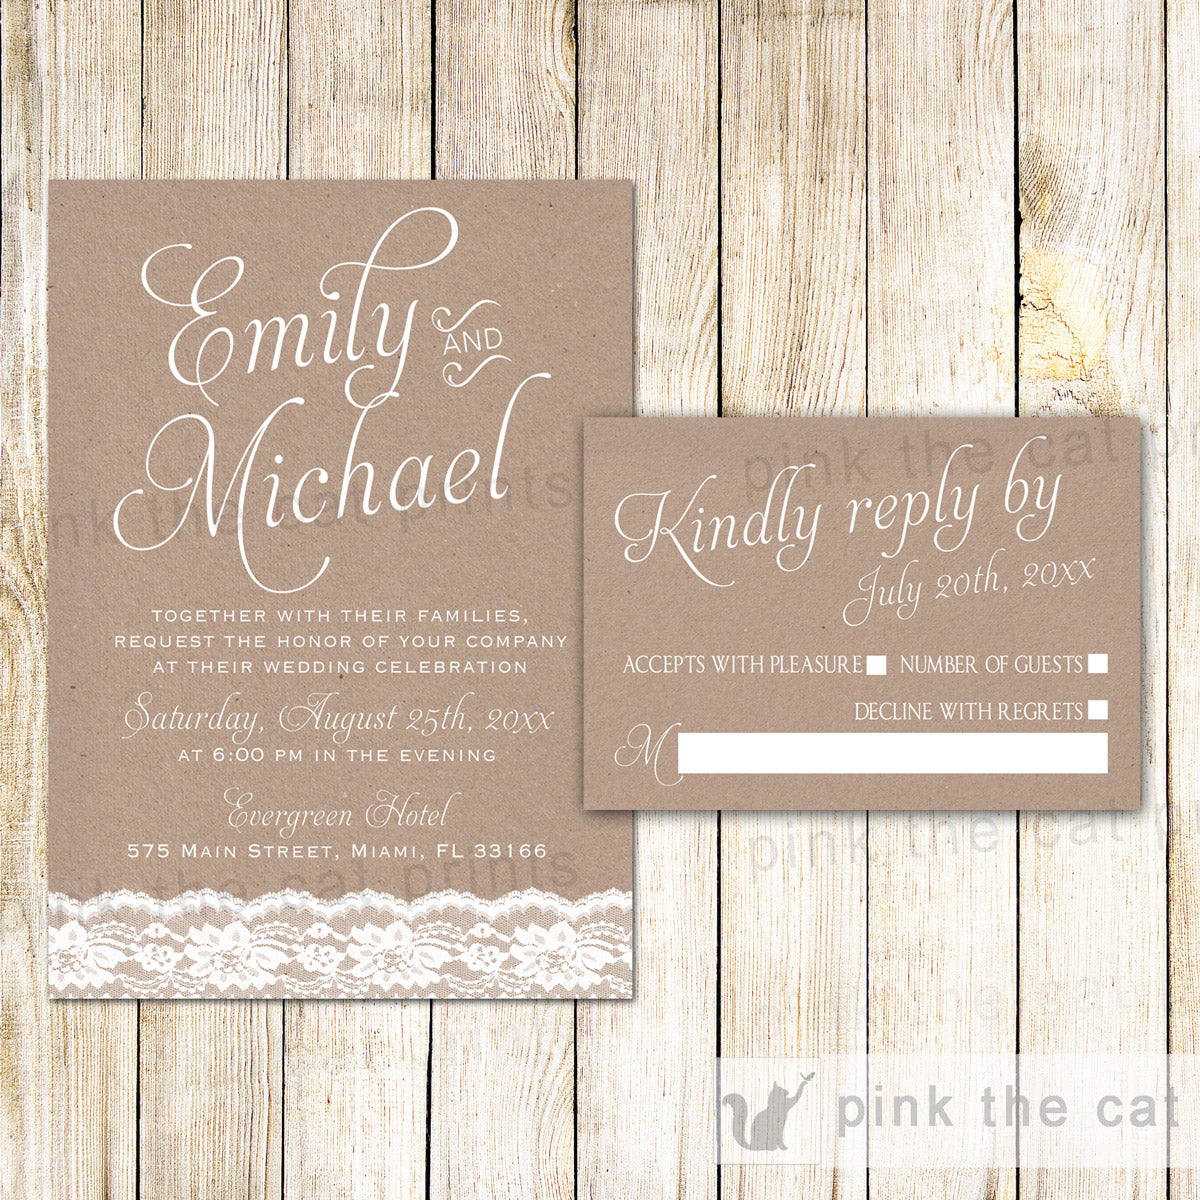 Lace Rustic Wedding Invitations Rsvp Cards Pink The Cat